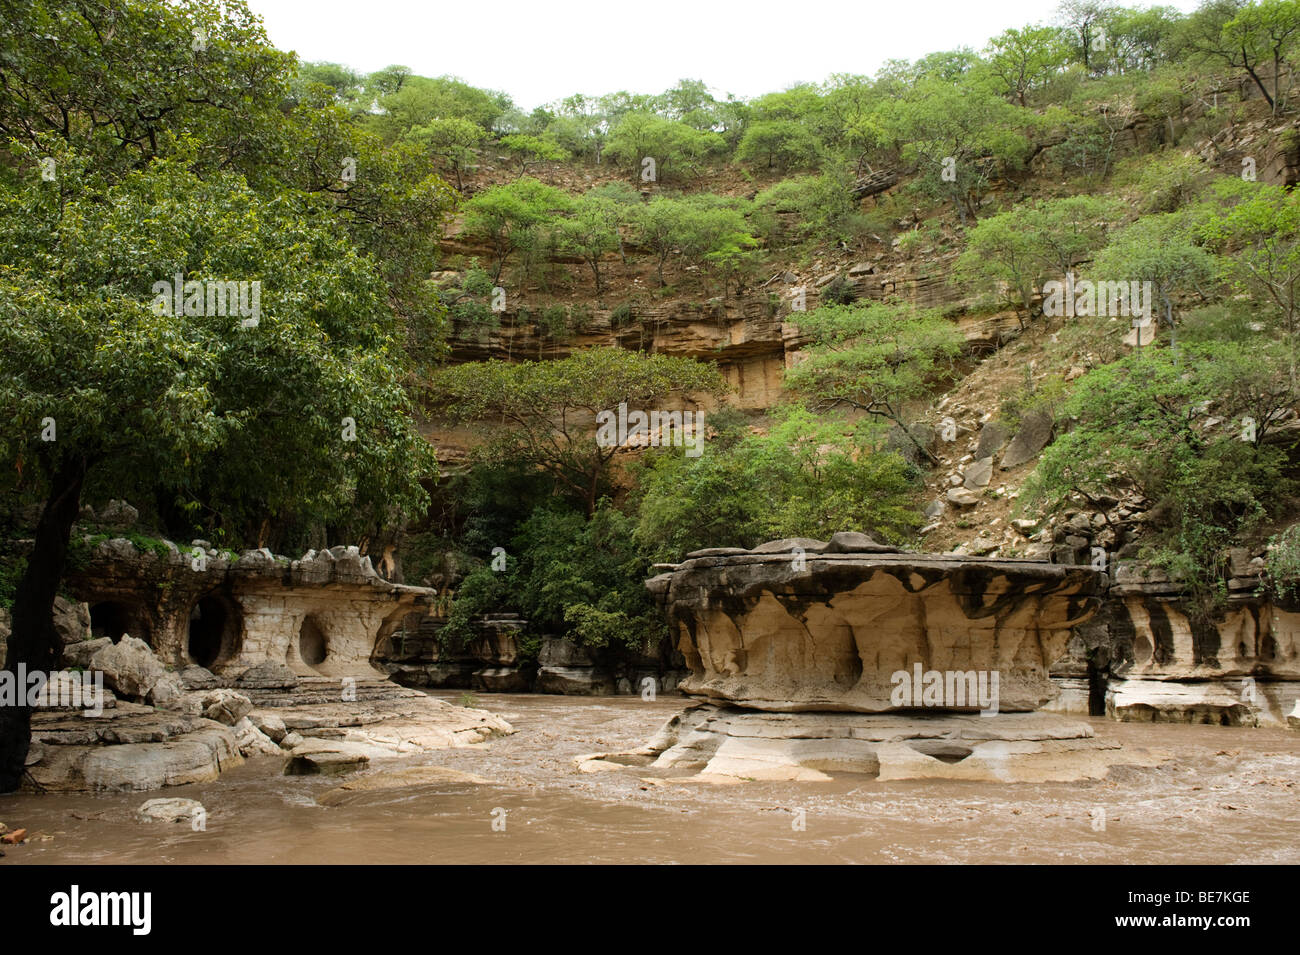 entrance to Sof Omar Cave, Ethiopia - Stock Image